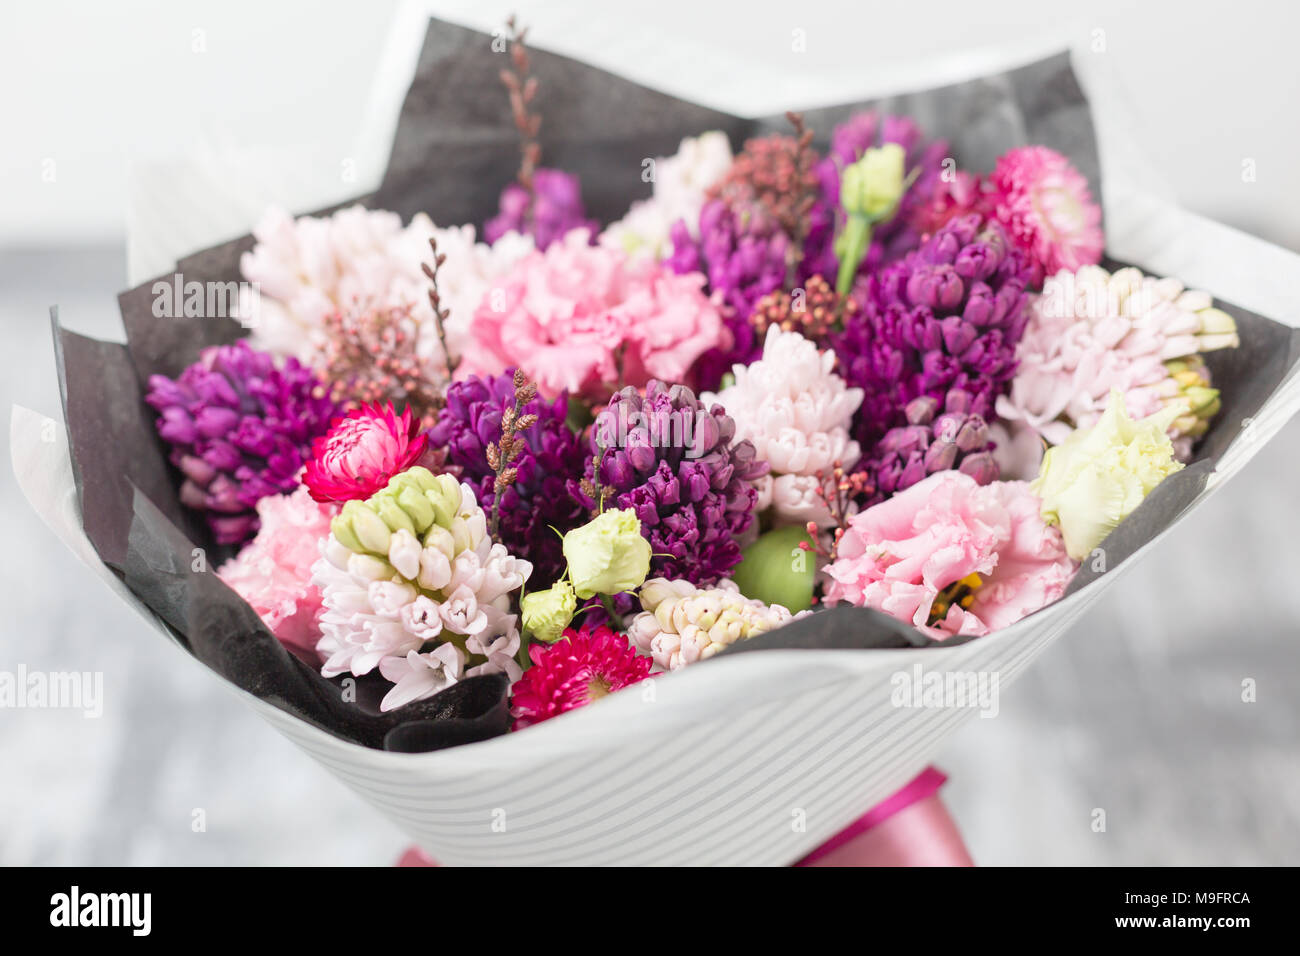 Bouquet of beautiful violet and pink hyacinths spring flowers in bouquet of beautiful violet and pink hyacinths spring flowers in vase on gray table background bulbous plant izmirmasajfo